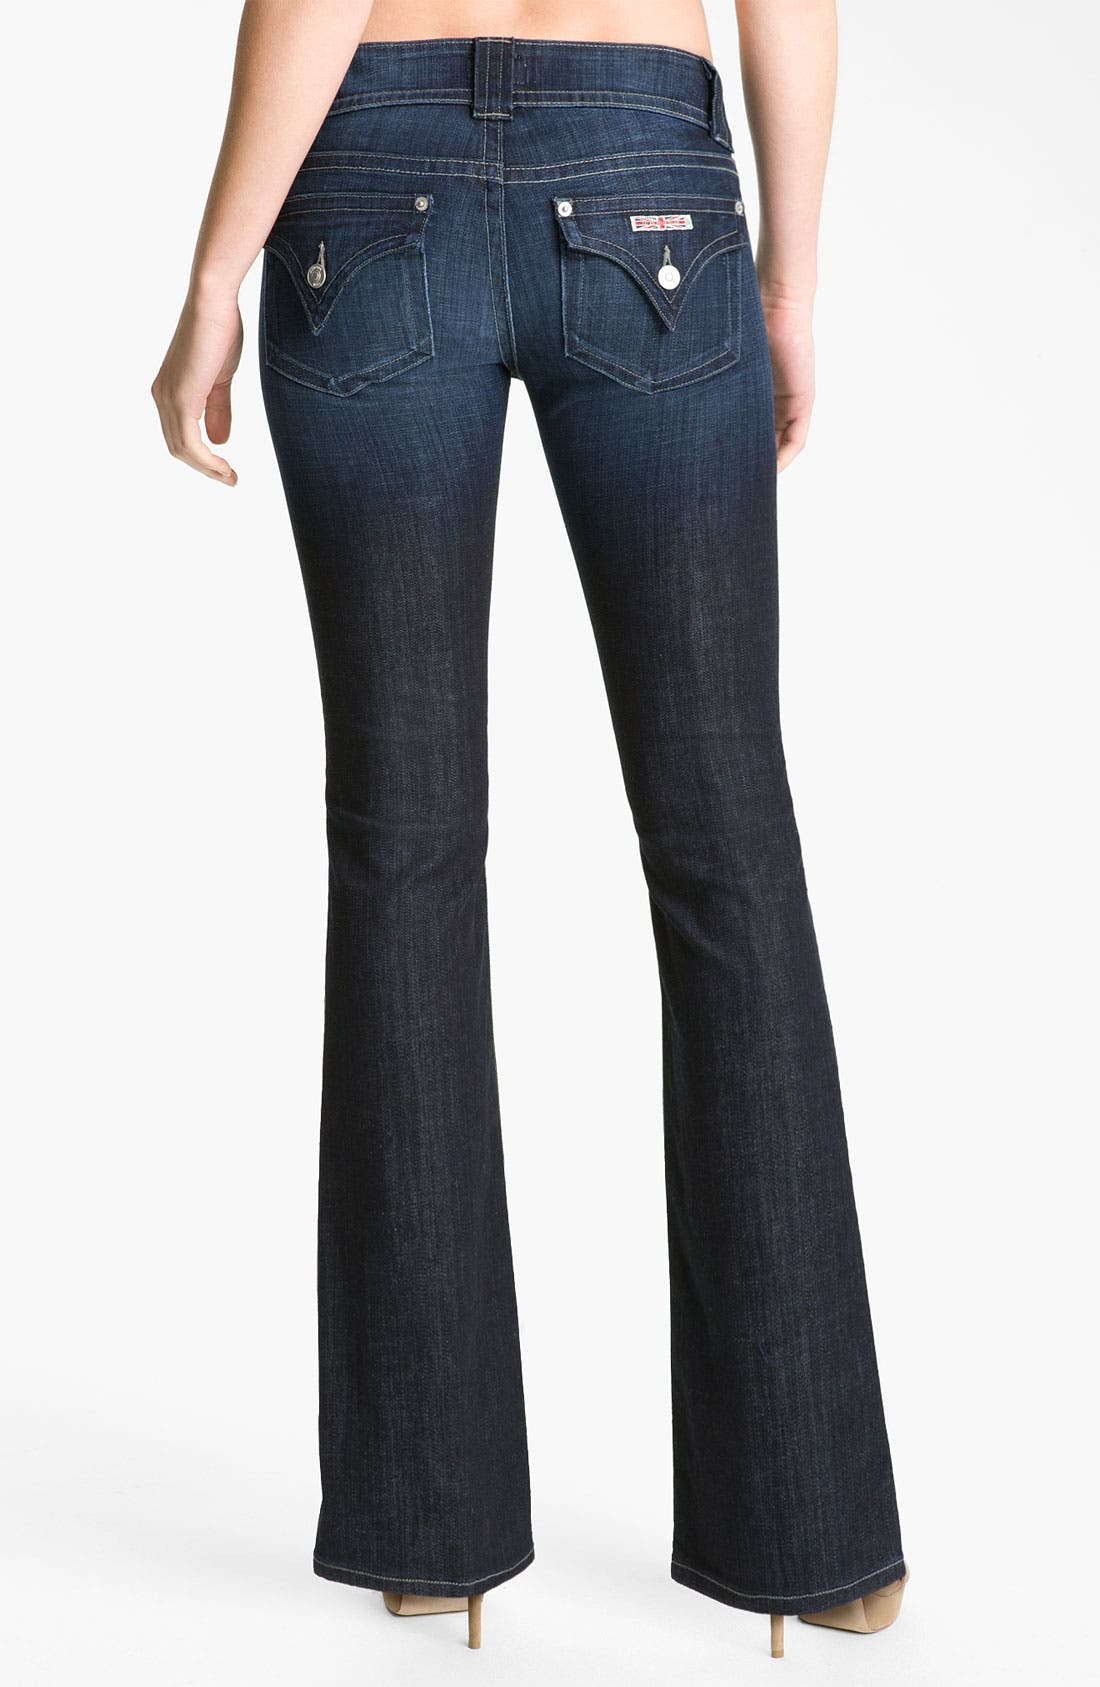 Alternate Image 2  - Hudson Jeans Signature Flap Pocket Bootcut Jeans (Bowery)